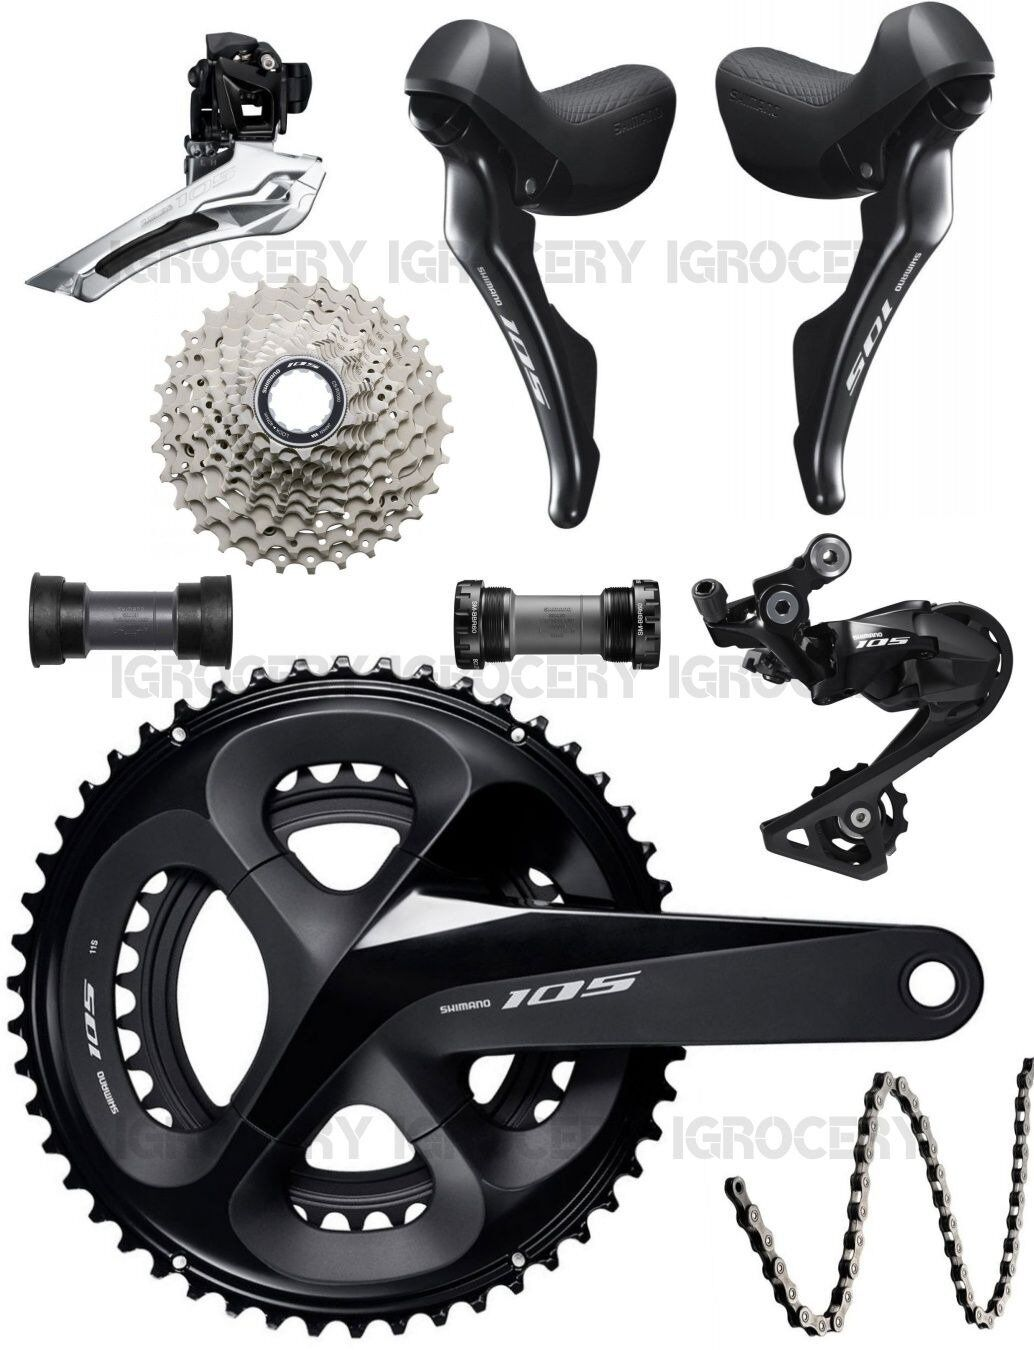 Shimano 105 R7000 Groupset 2x11-speed Road Bike  7Pcs Mechanical New (52 36T GS)  healthy